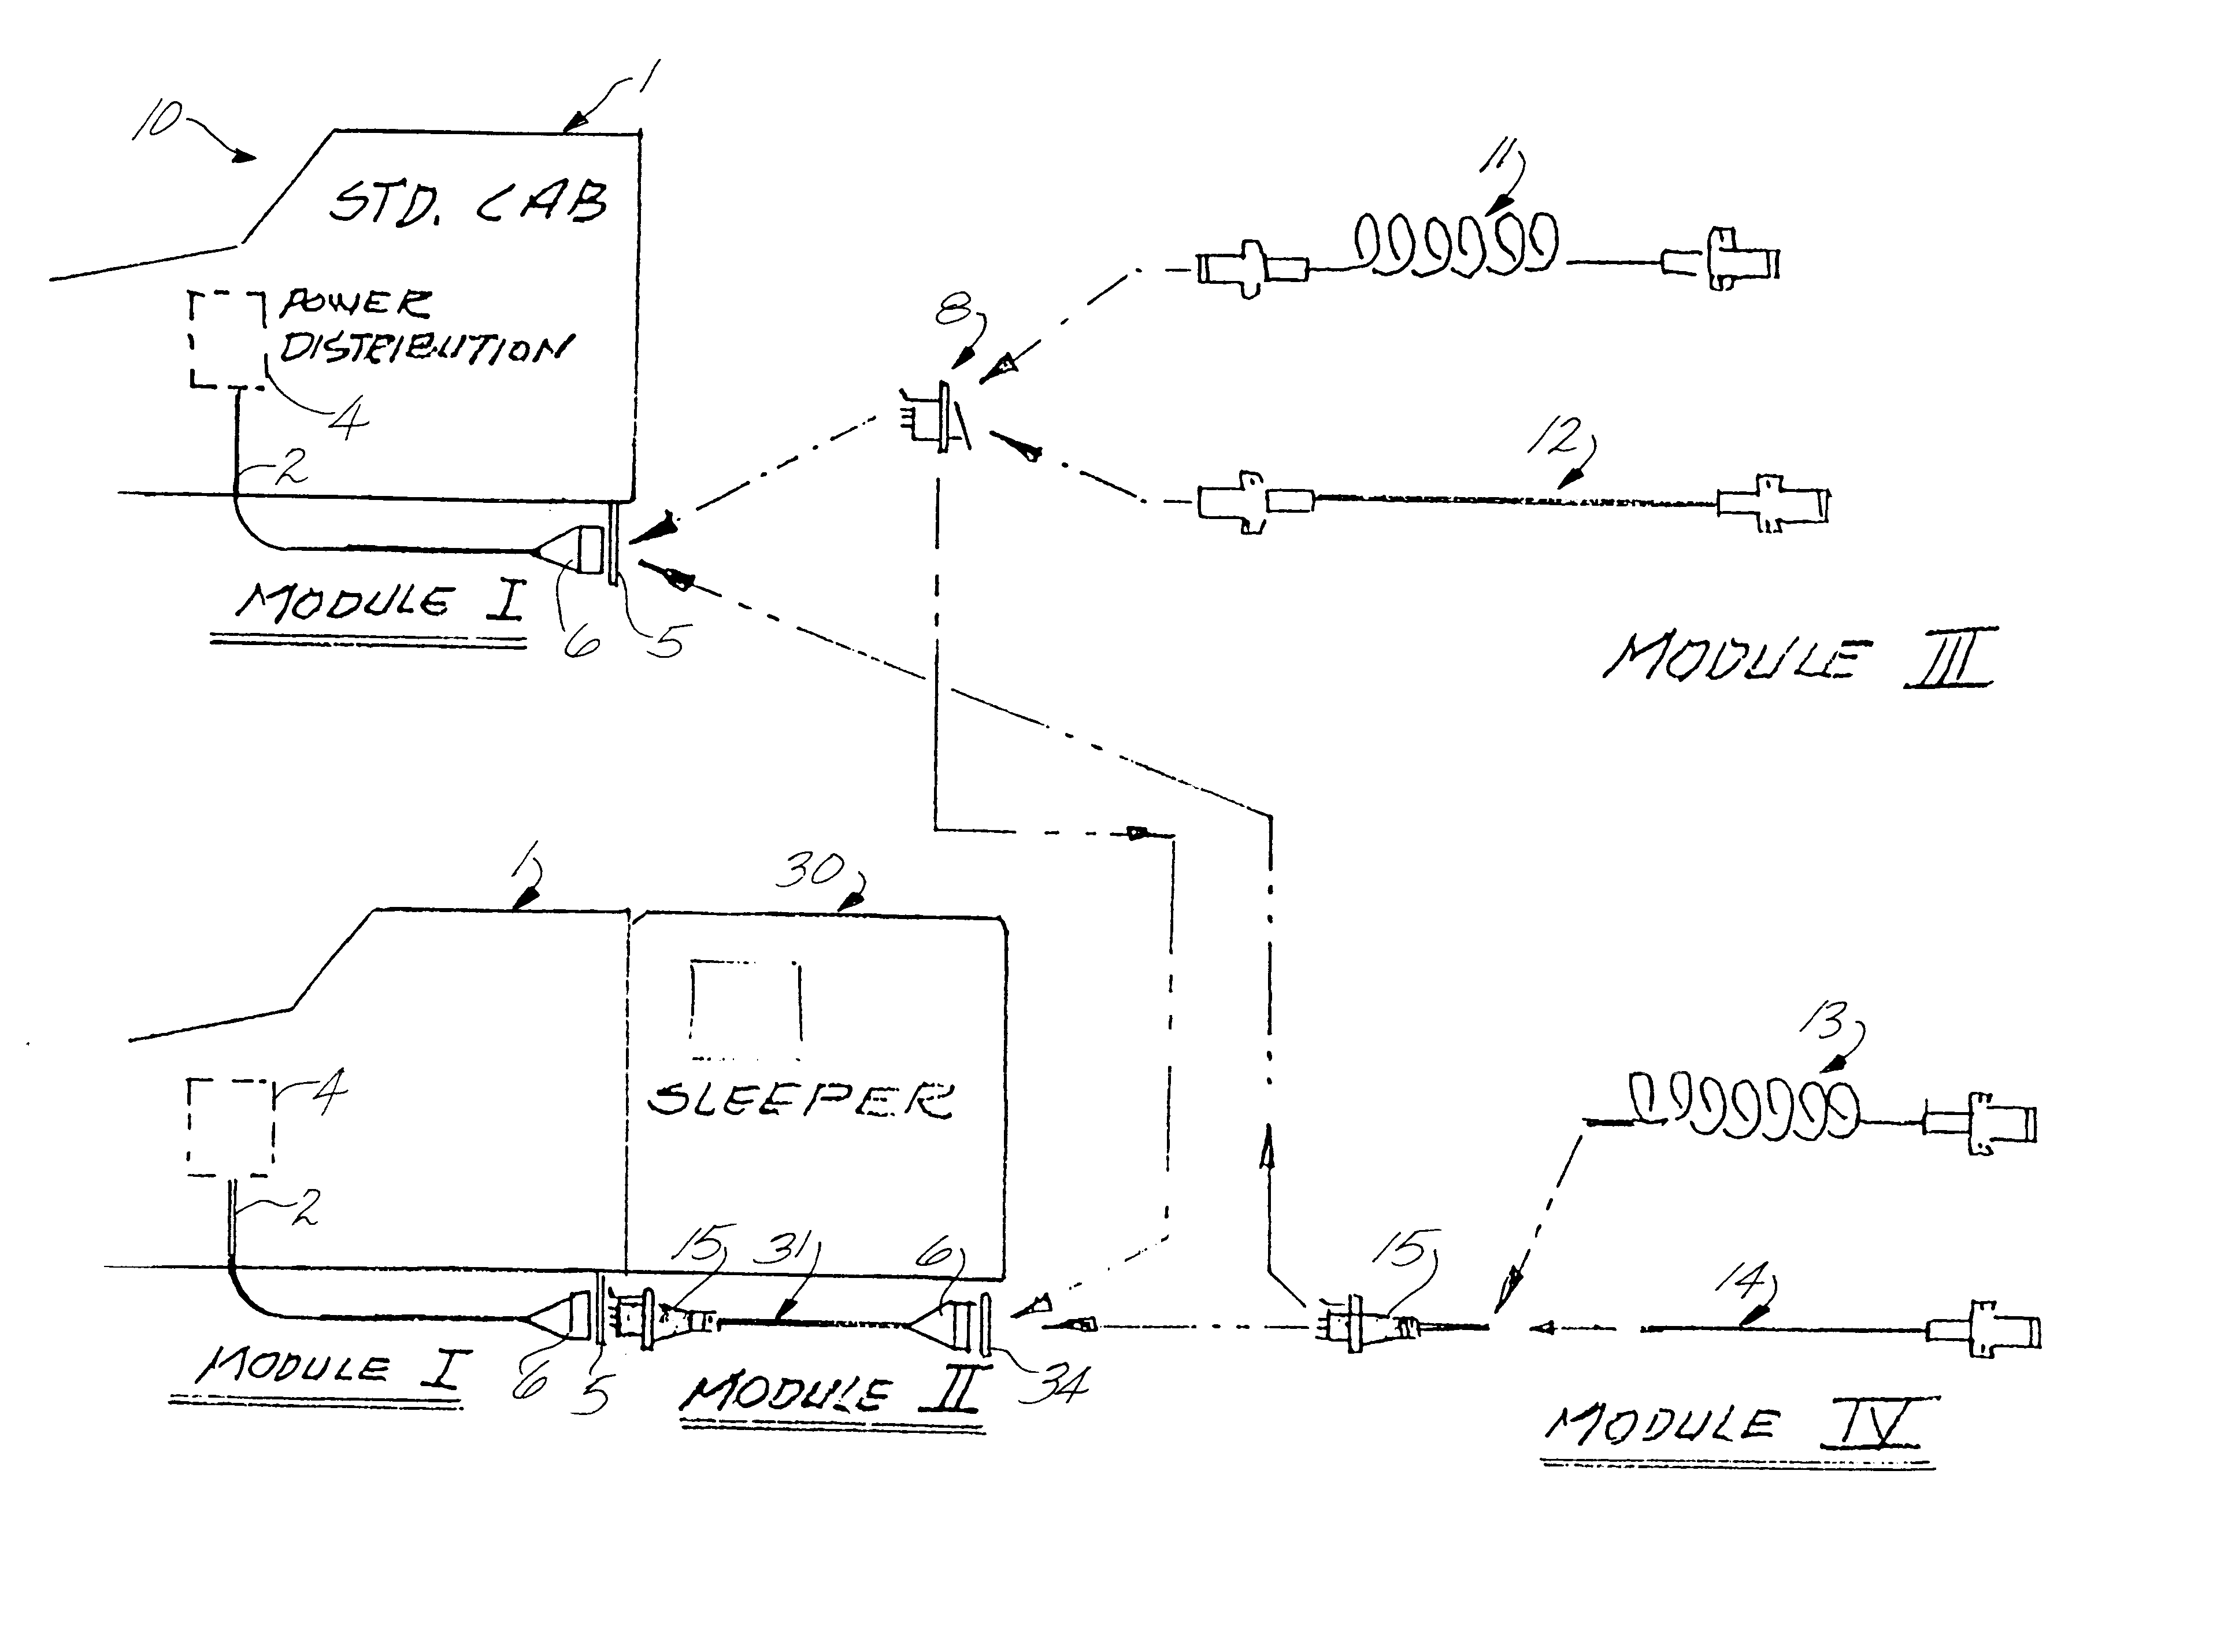 patent us6483200 electrical cable system for truck tractor cabs patent drawing